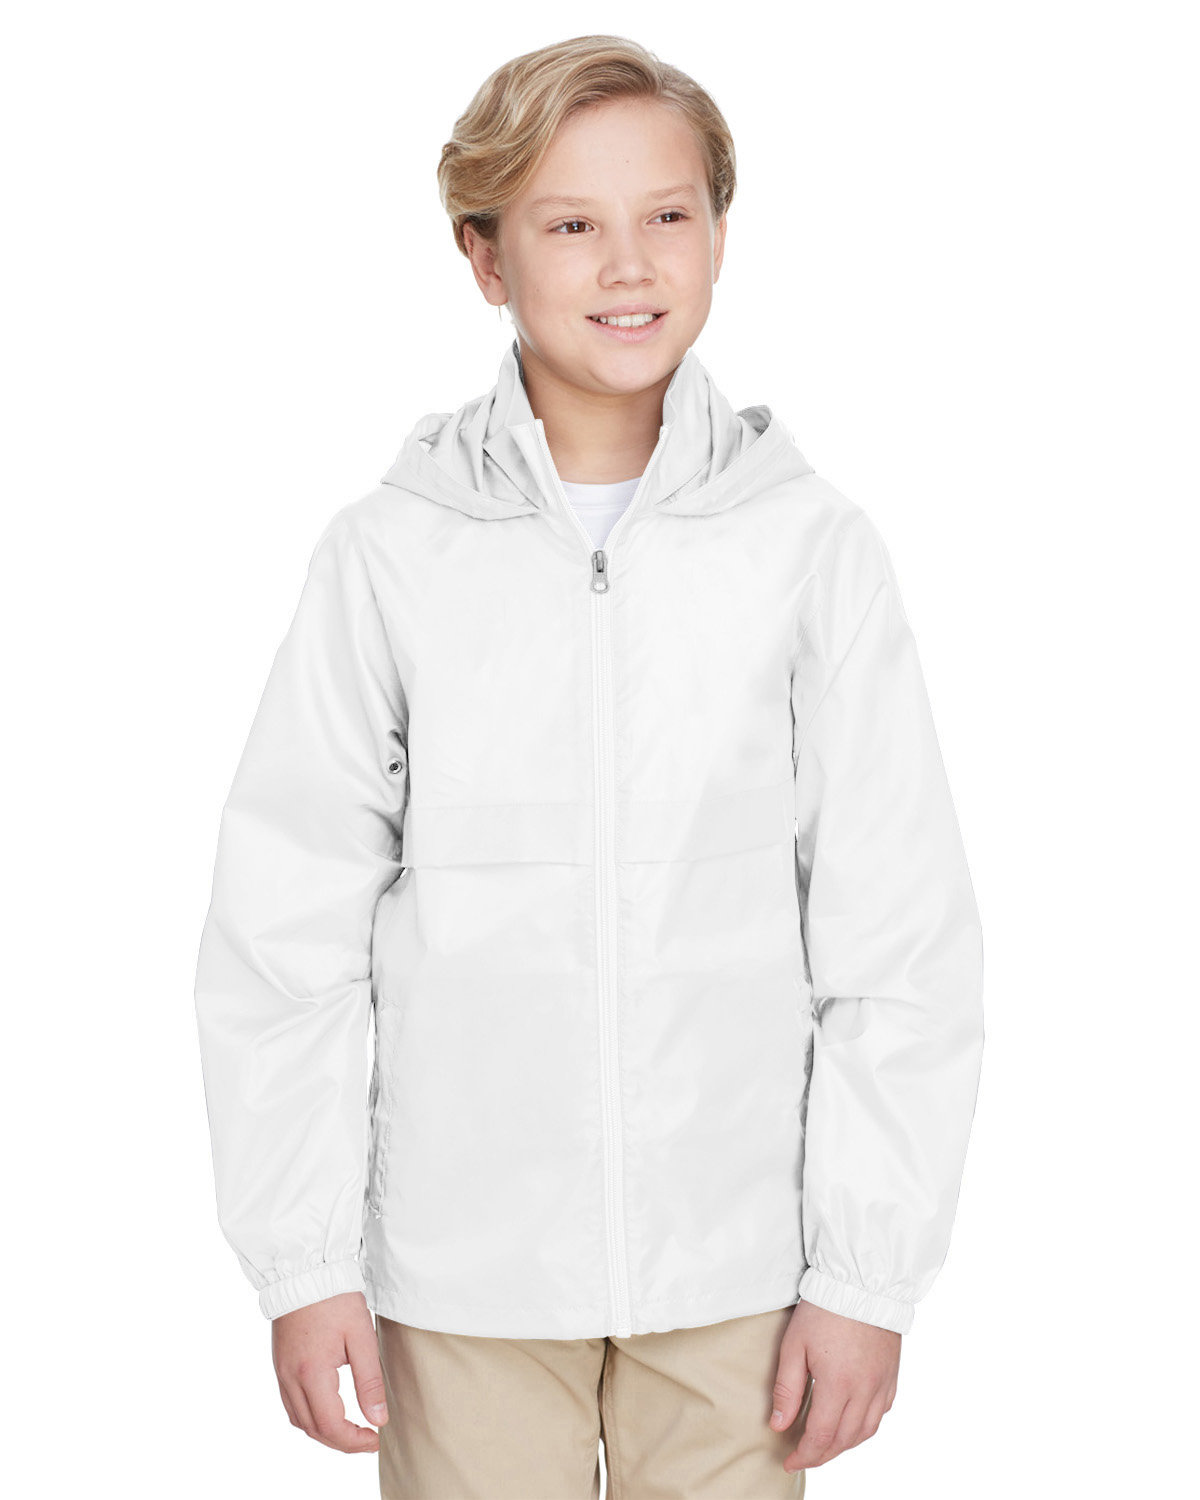 Team 365 Youth Zone Protect Lightweight Jacket WHITE